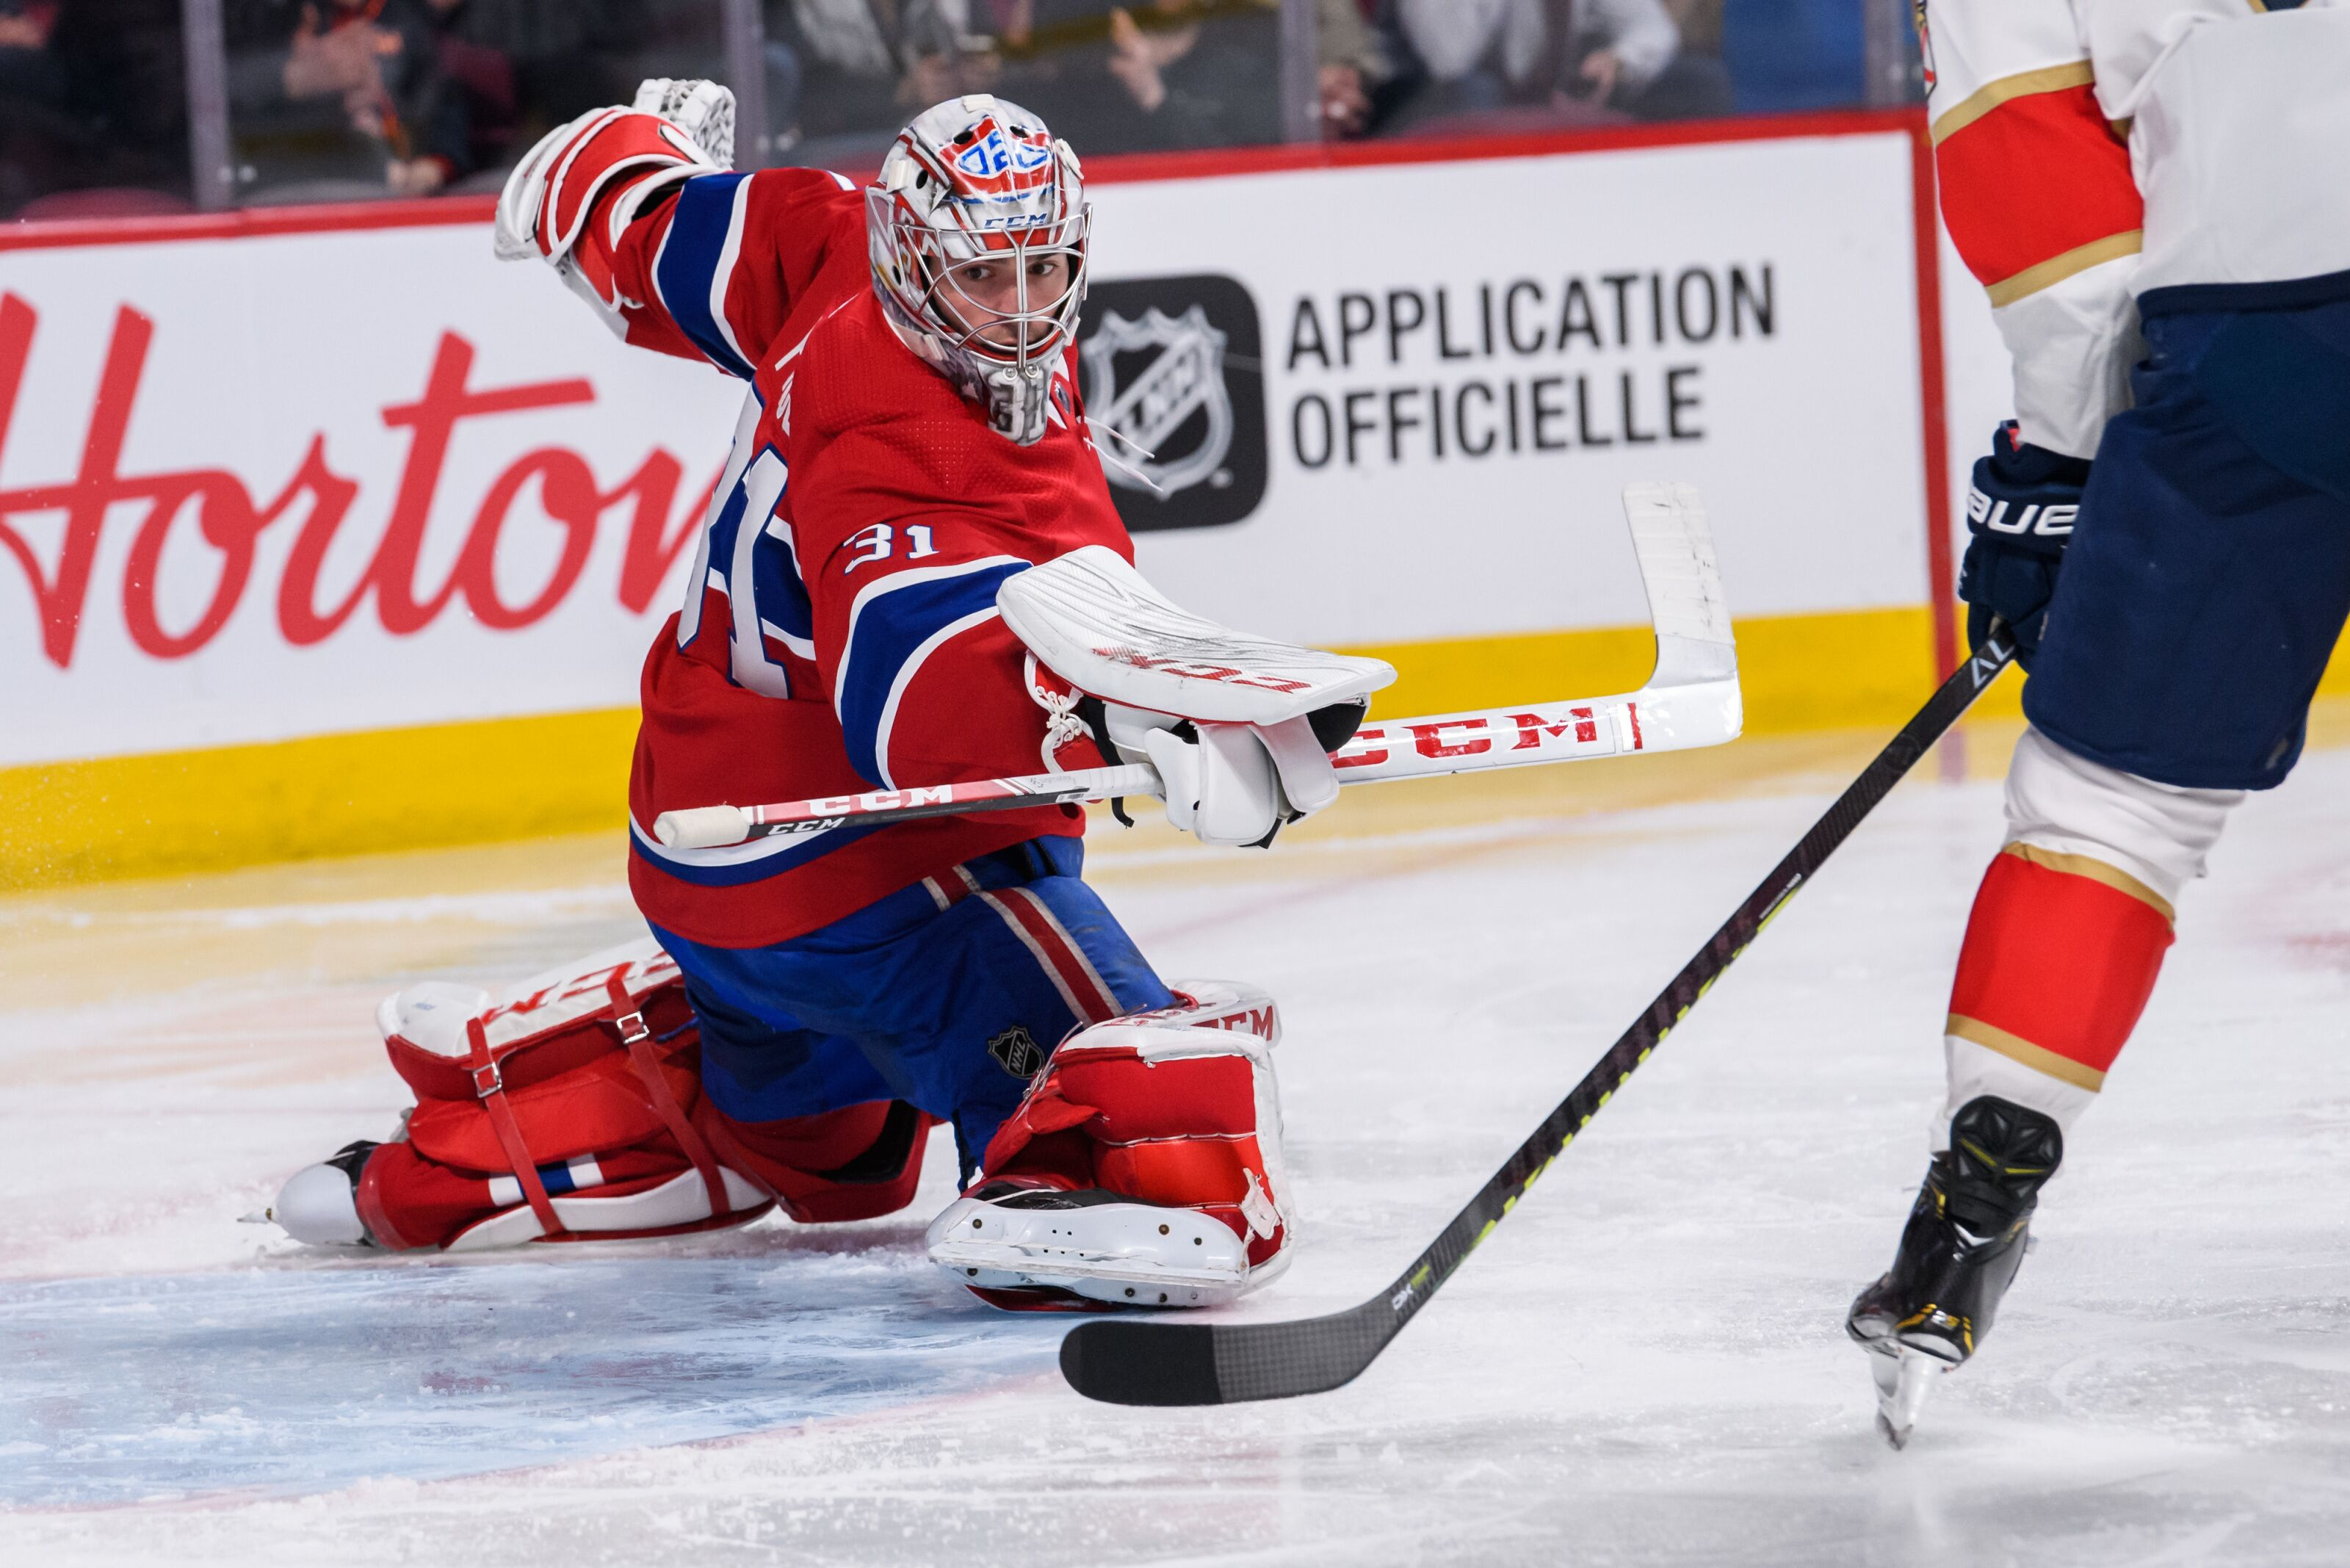 Montreal Canadiens: Two important messages to take from the playoffs